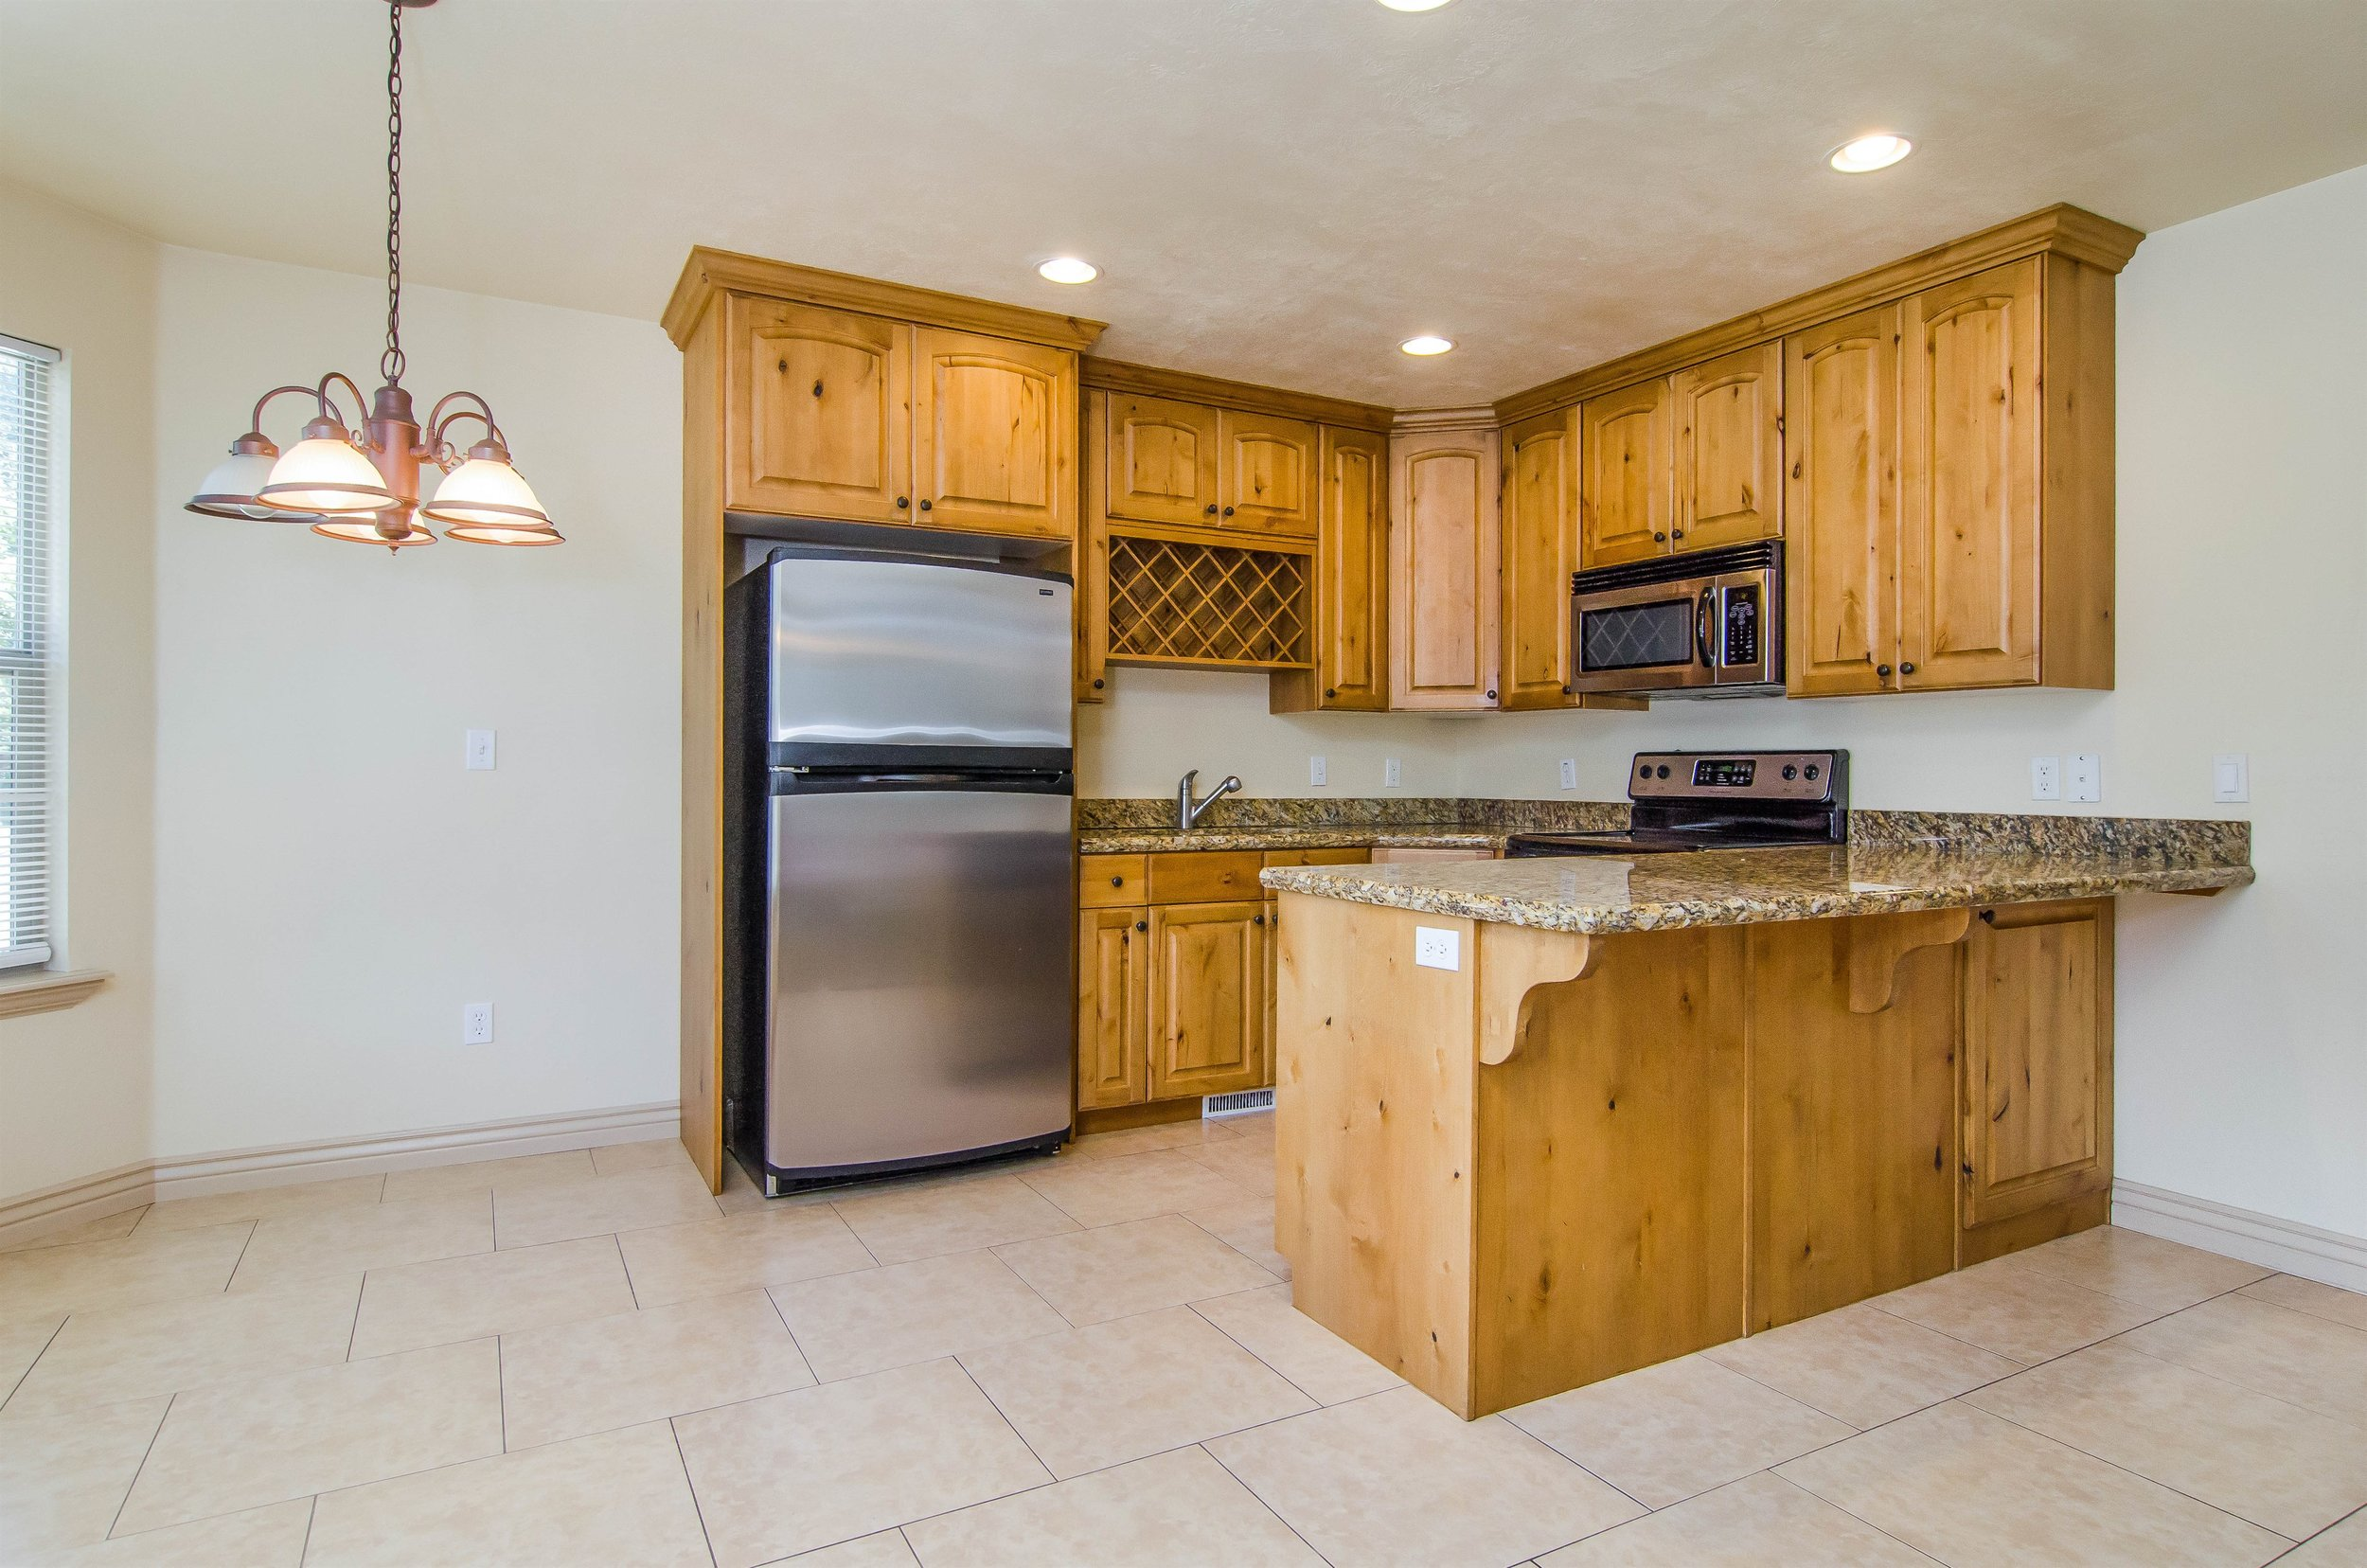 006_Kitchen .jpg